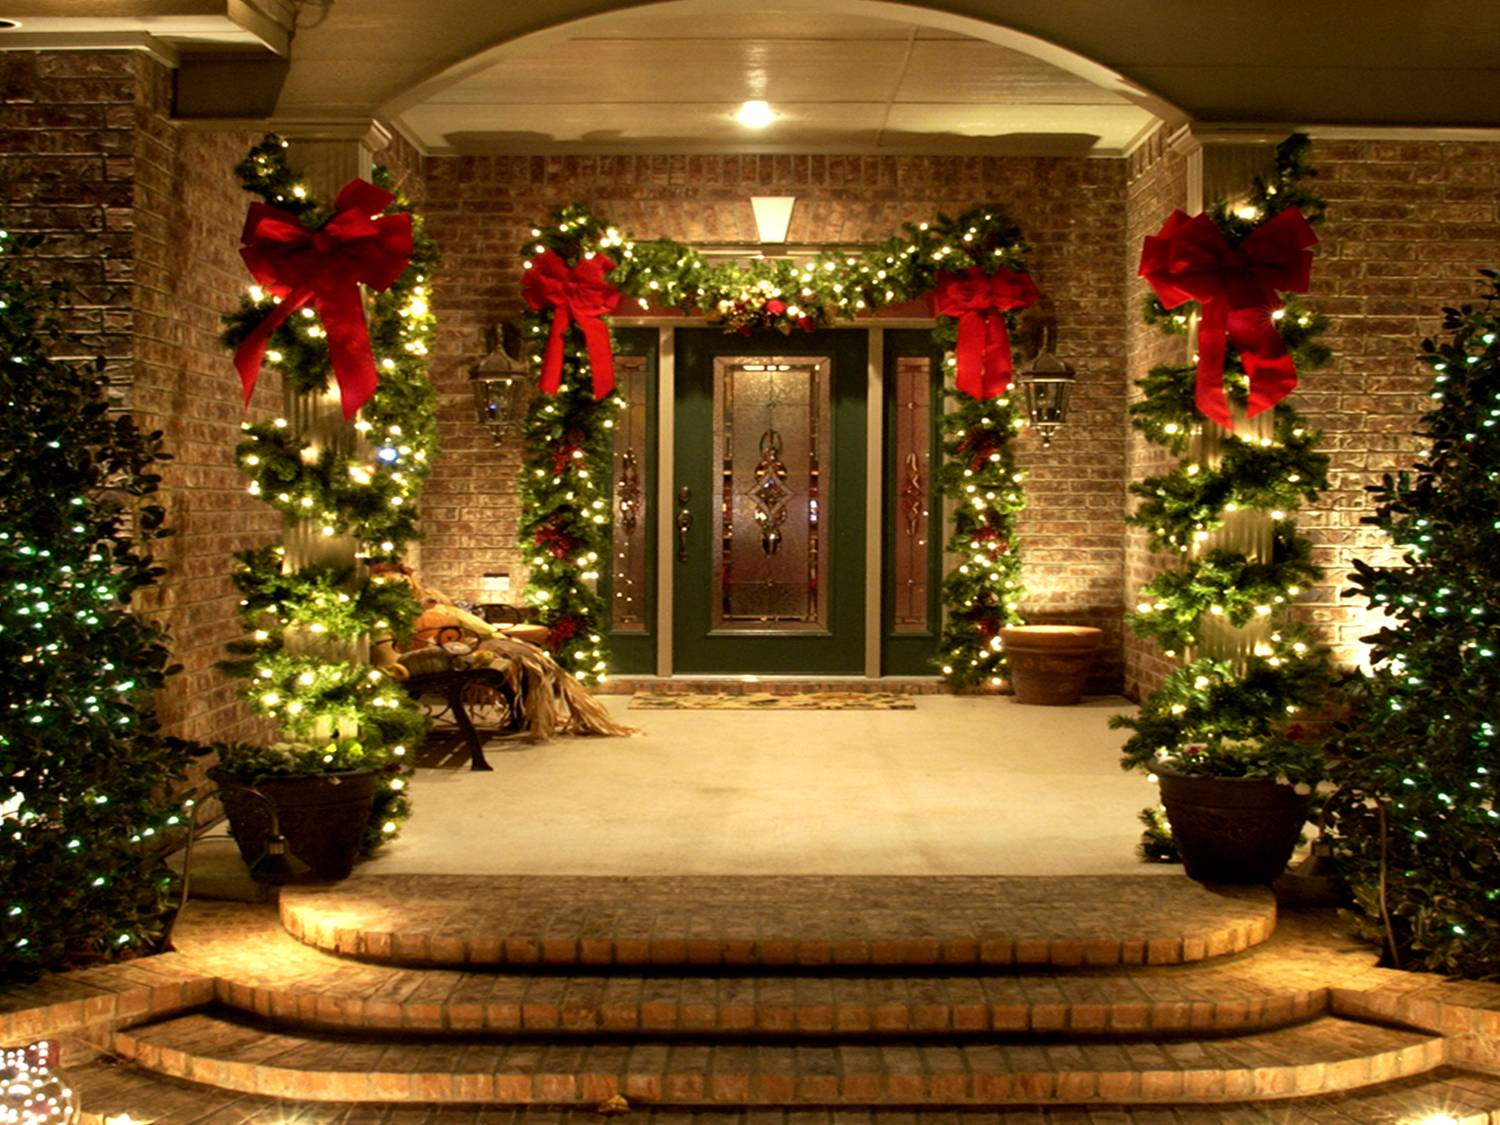 31 Exterior Christmas Decorating Ideas   InspirationSeek com Exterior Christmas Decorating Ideas